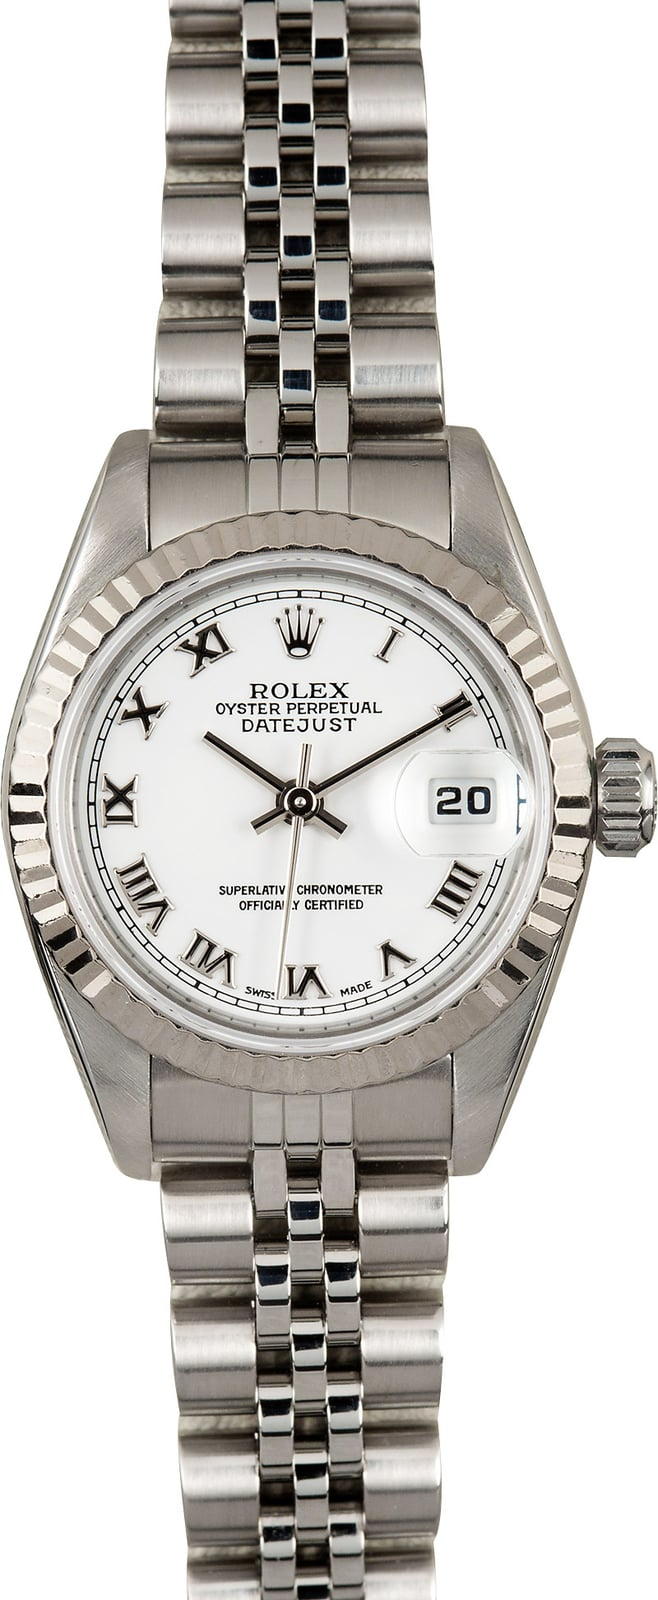 Certified Pre Owned >> Rolex Womens Datejust 79174 Stainless - Certified Pre-Owned